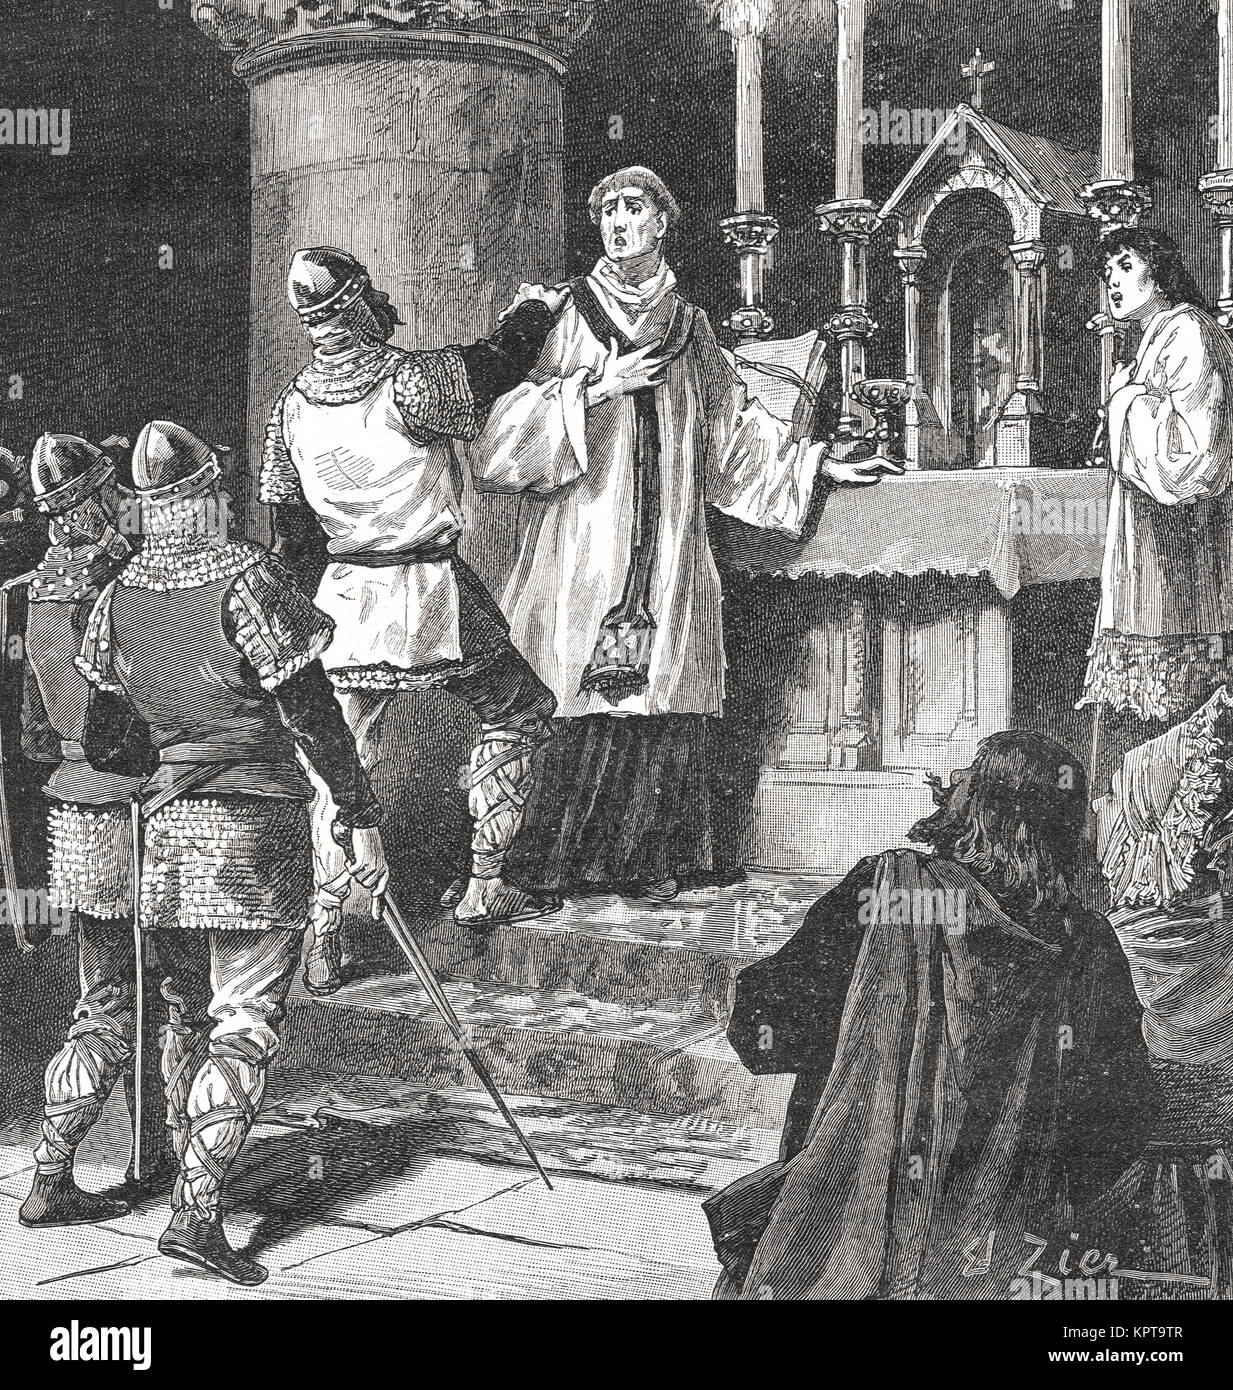 The arrest of archbishop Geoffrey, priory of St. Martin in Dover, 1191 - Stock Image